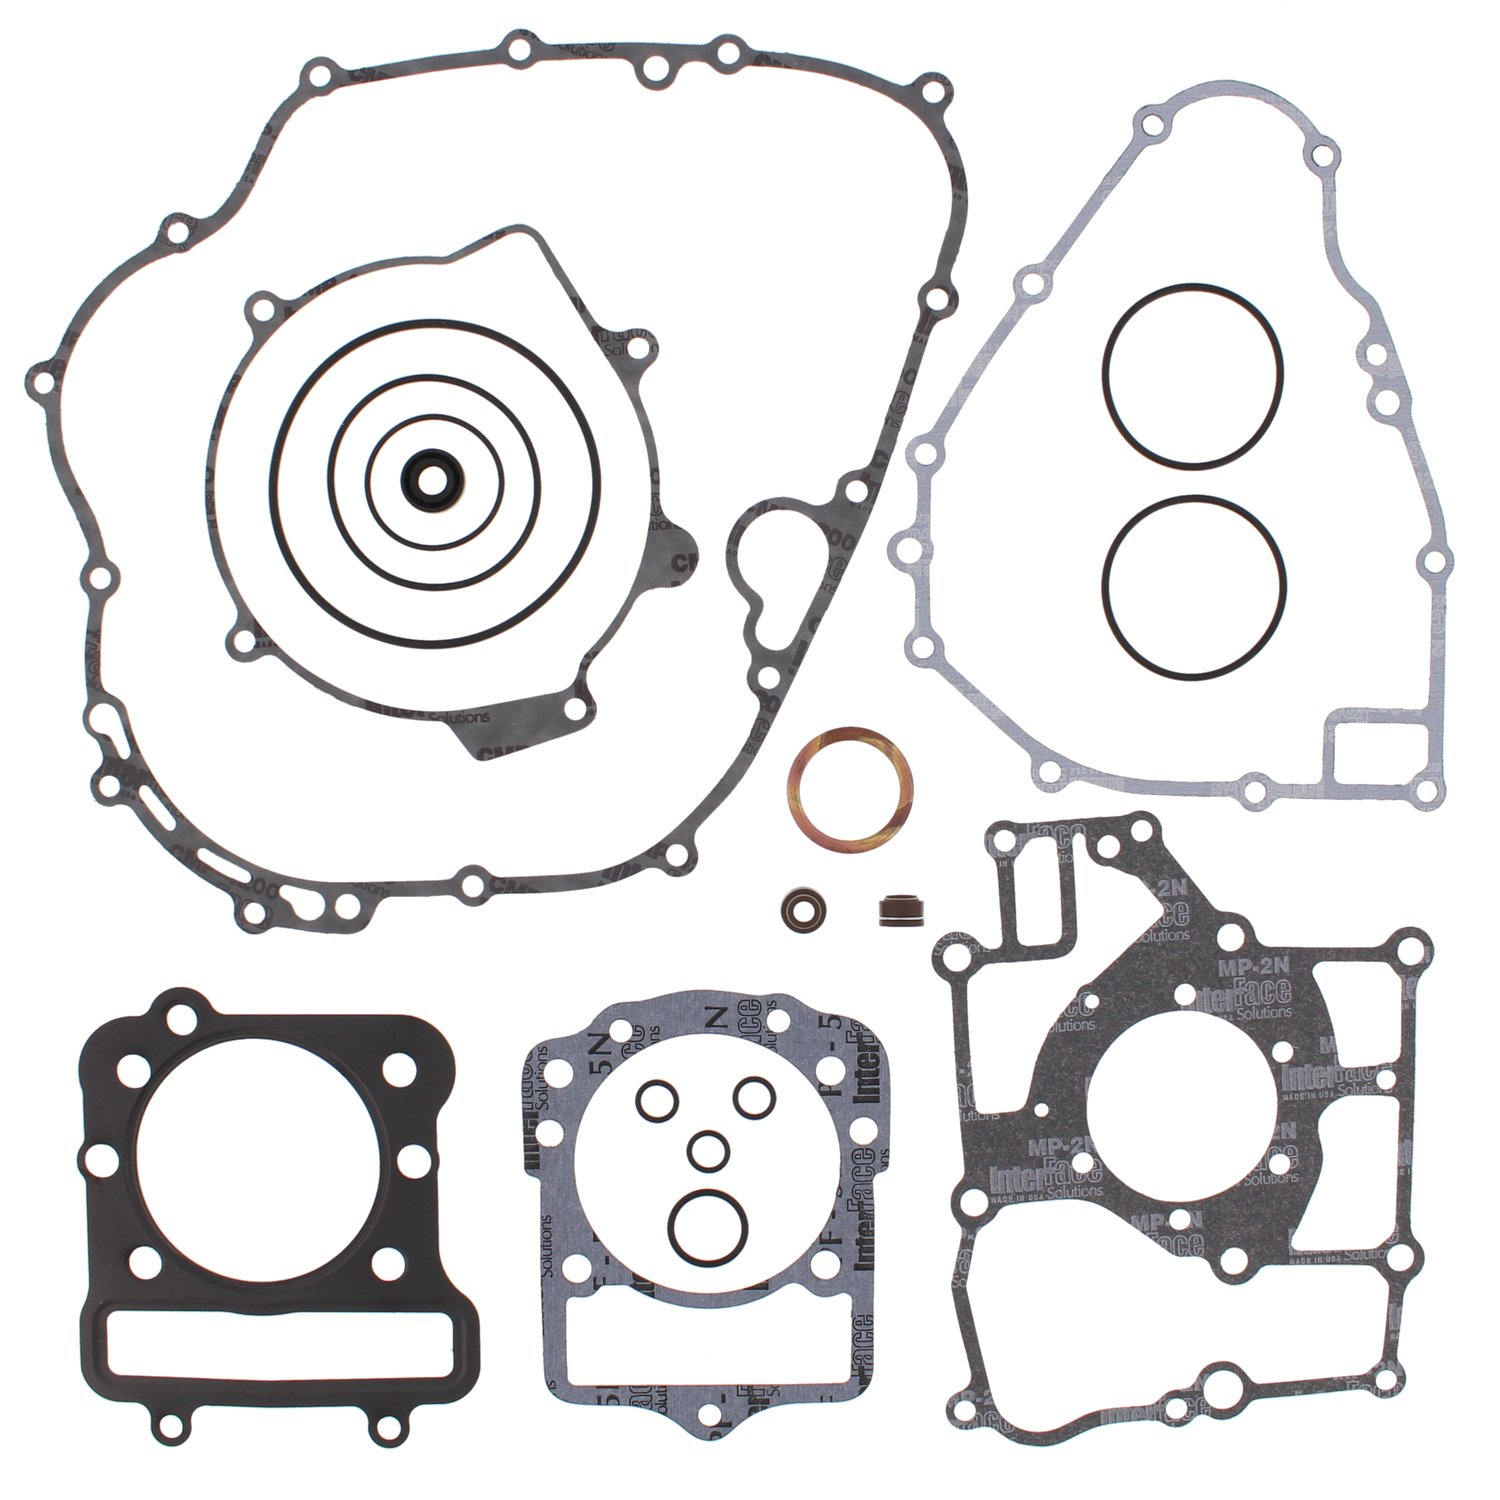 KAWASAKI BAYOU LAKOTA 300 ENGINE COMPLETE GASKETS KIT ATV, Side-by-Side & UTV Parts & Accessories Auto Parts & Accessories